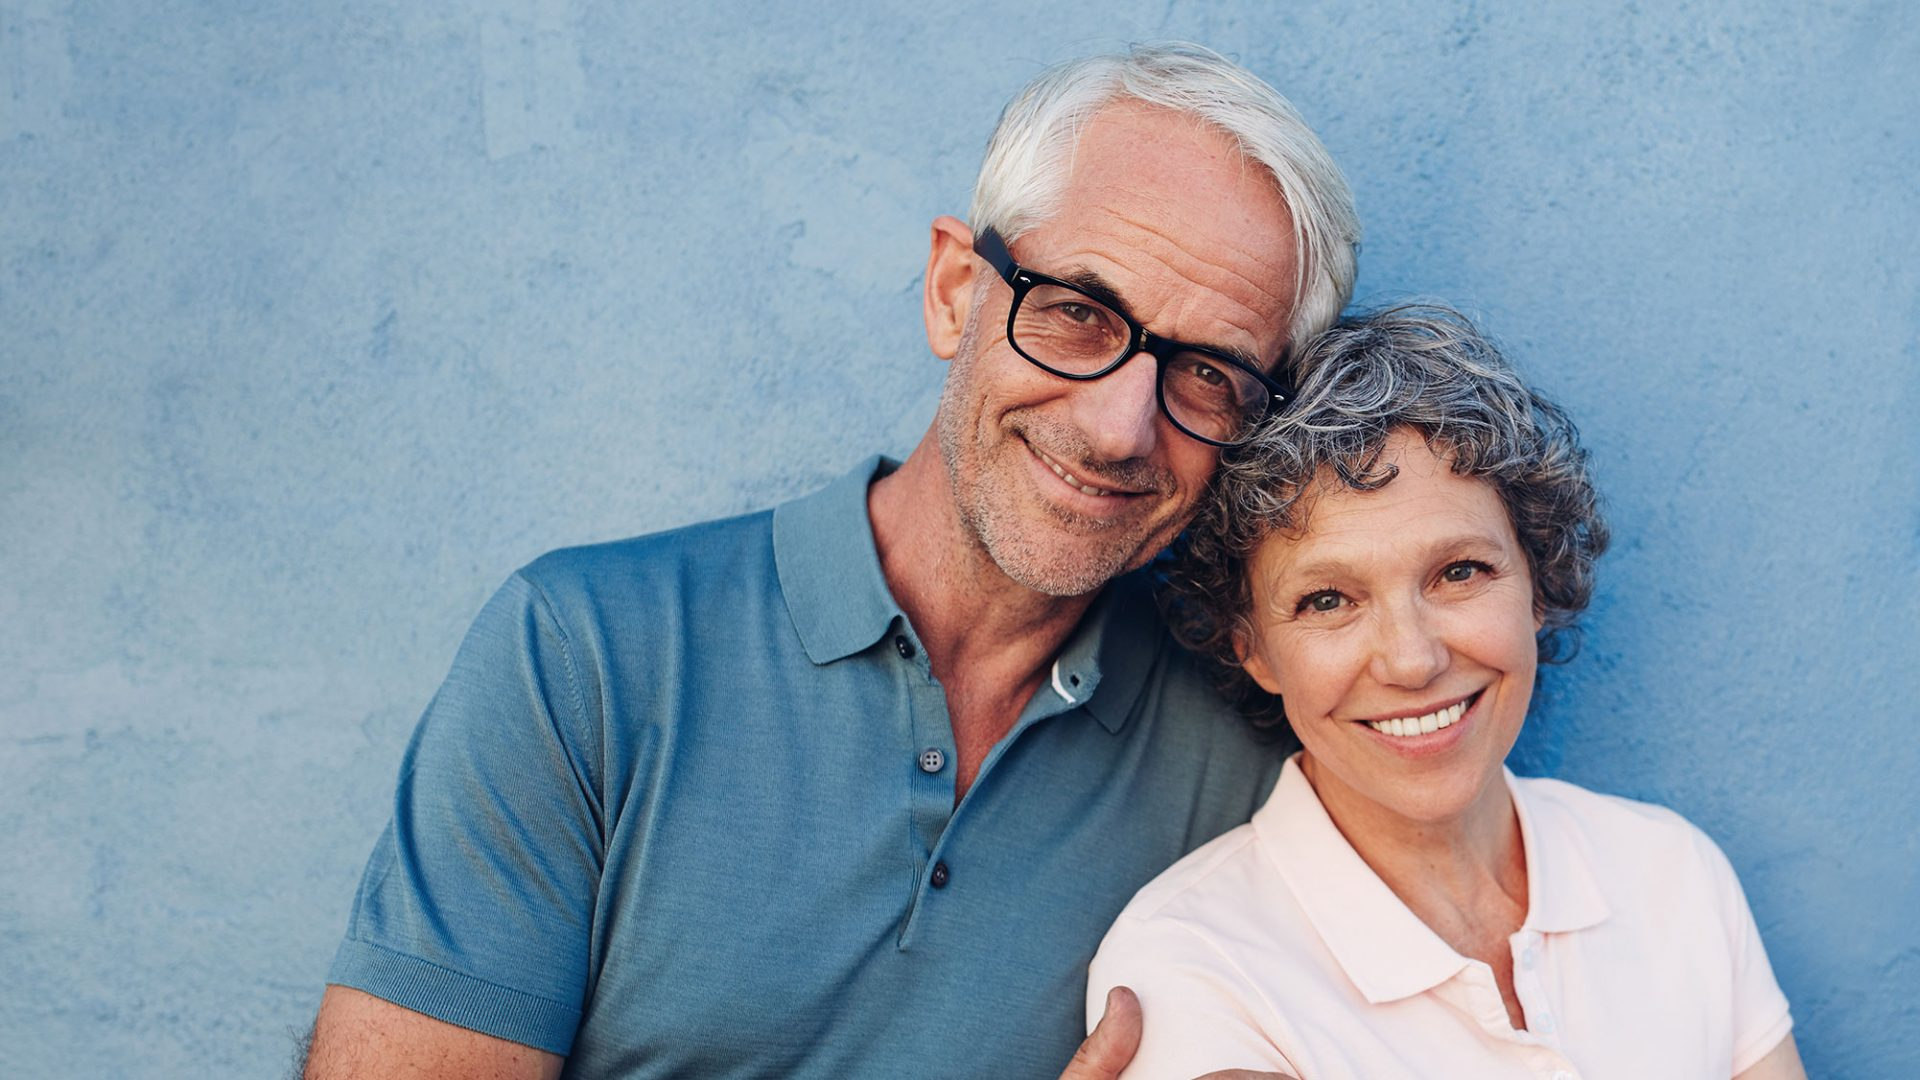 Middle aged couple standing against a textured wall and smiling